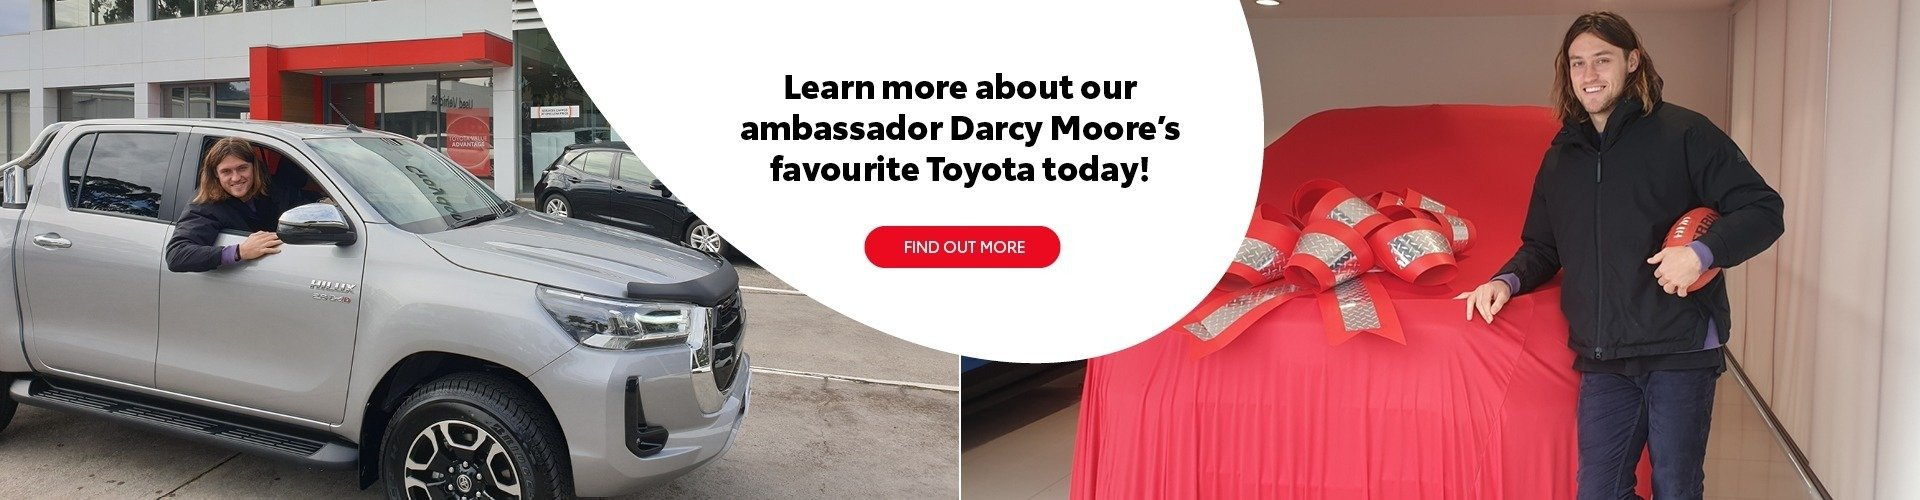 Darcy Moore and Toyota HiLux